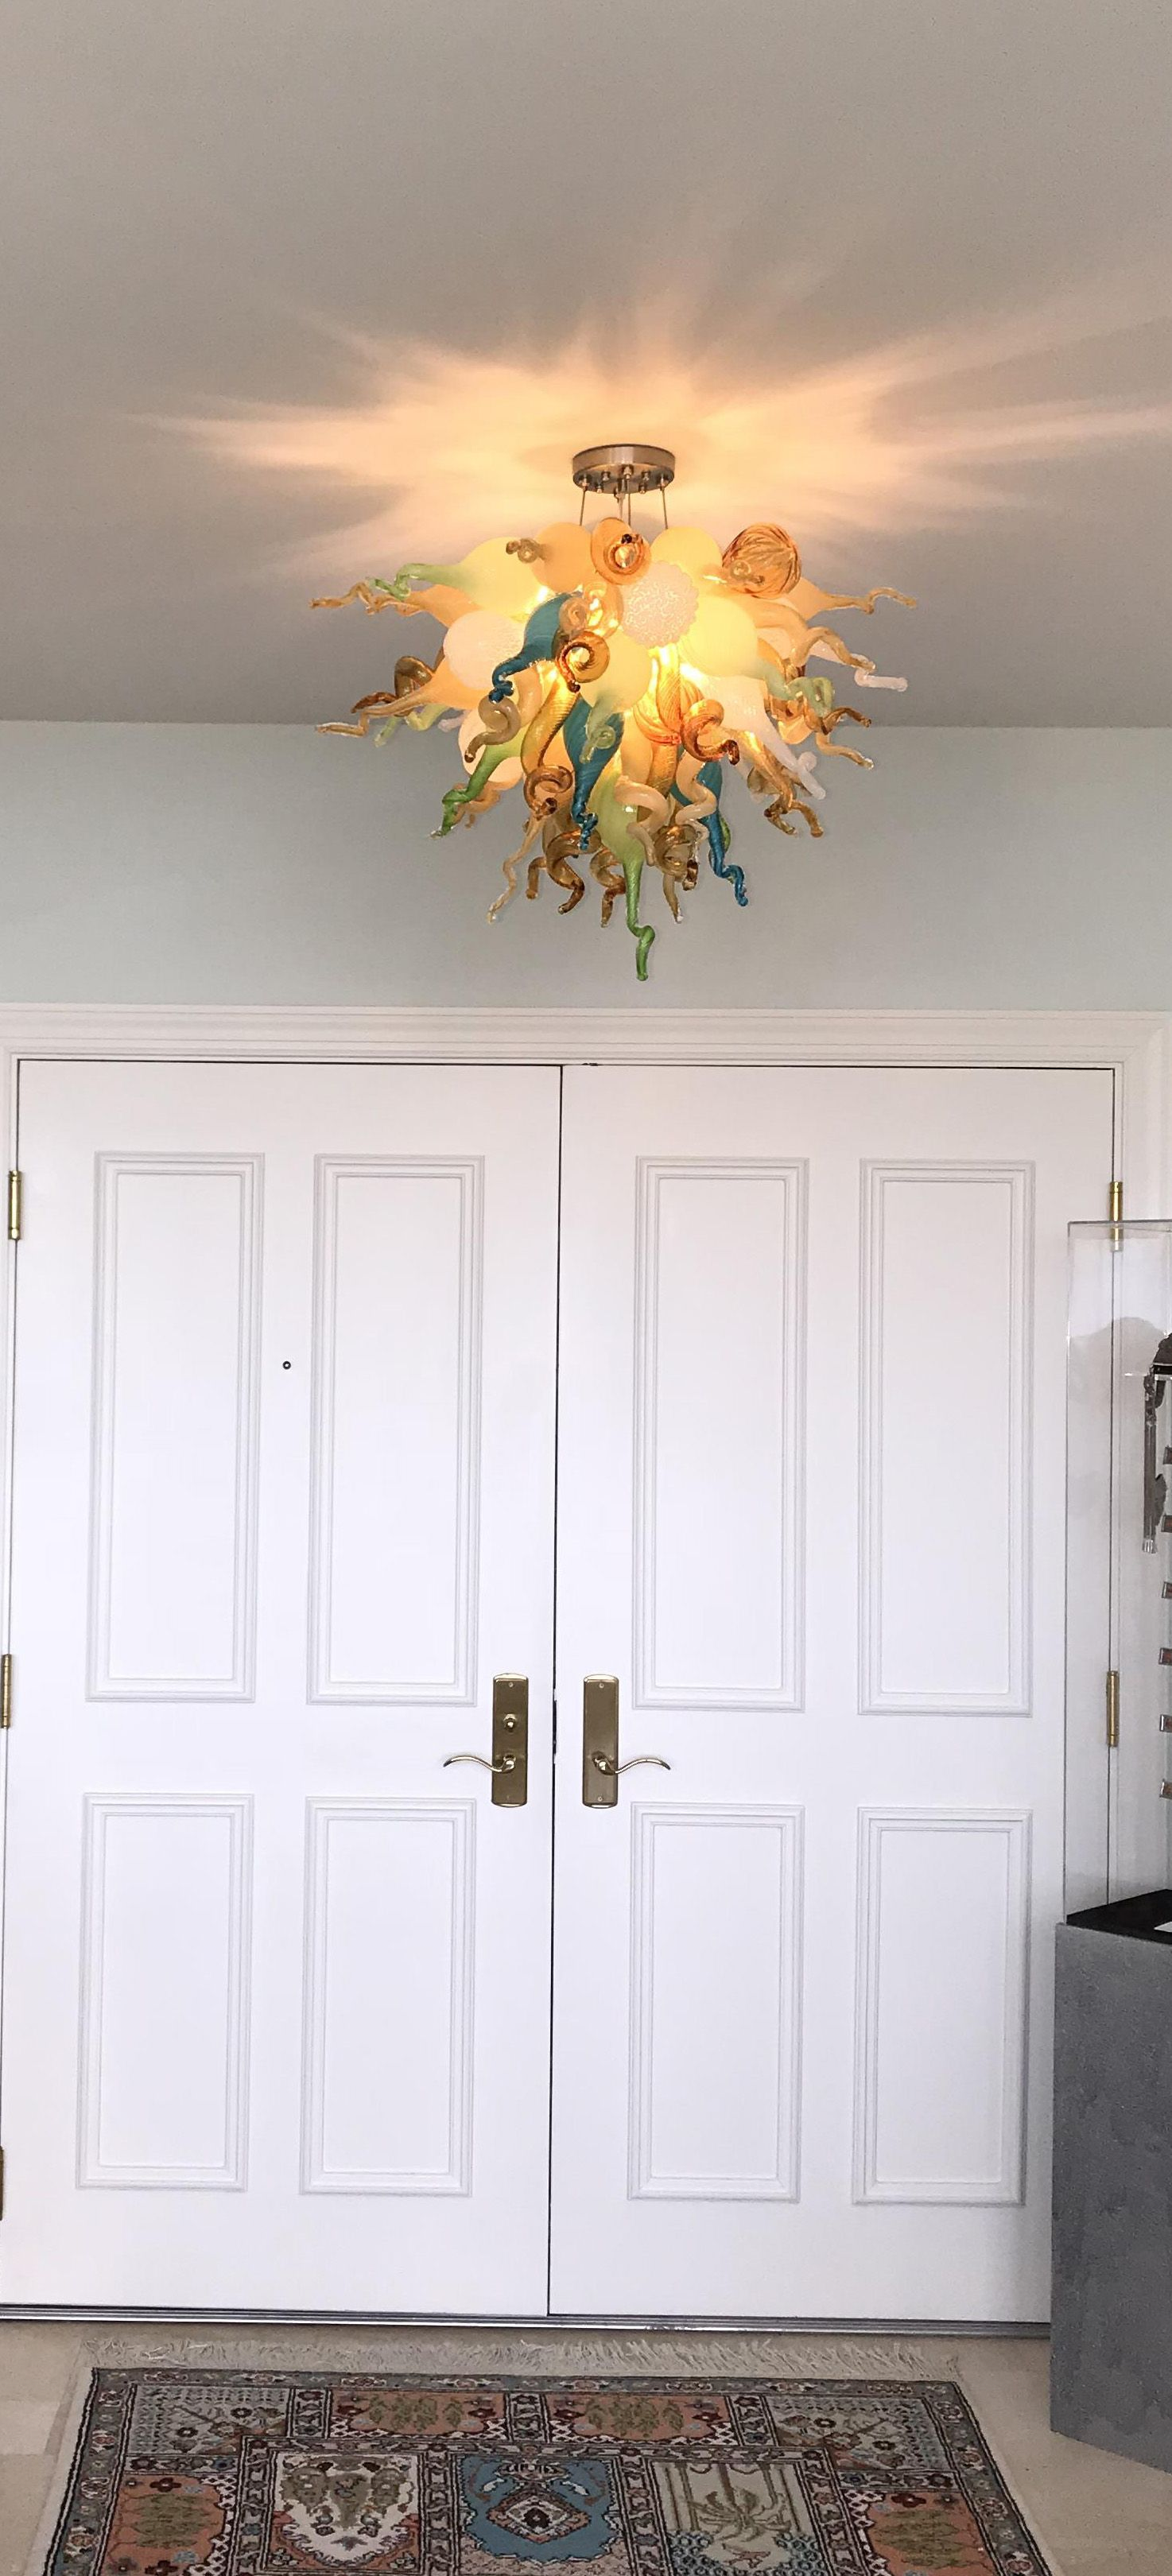 1020 Gl Art S Mini Sandy Cove Chandelier Installed In A Residence Florida